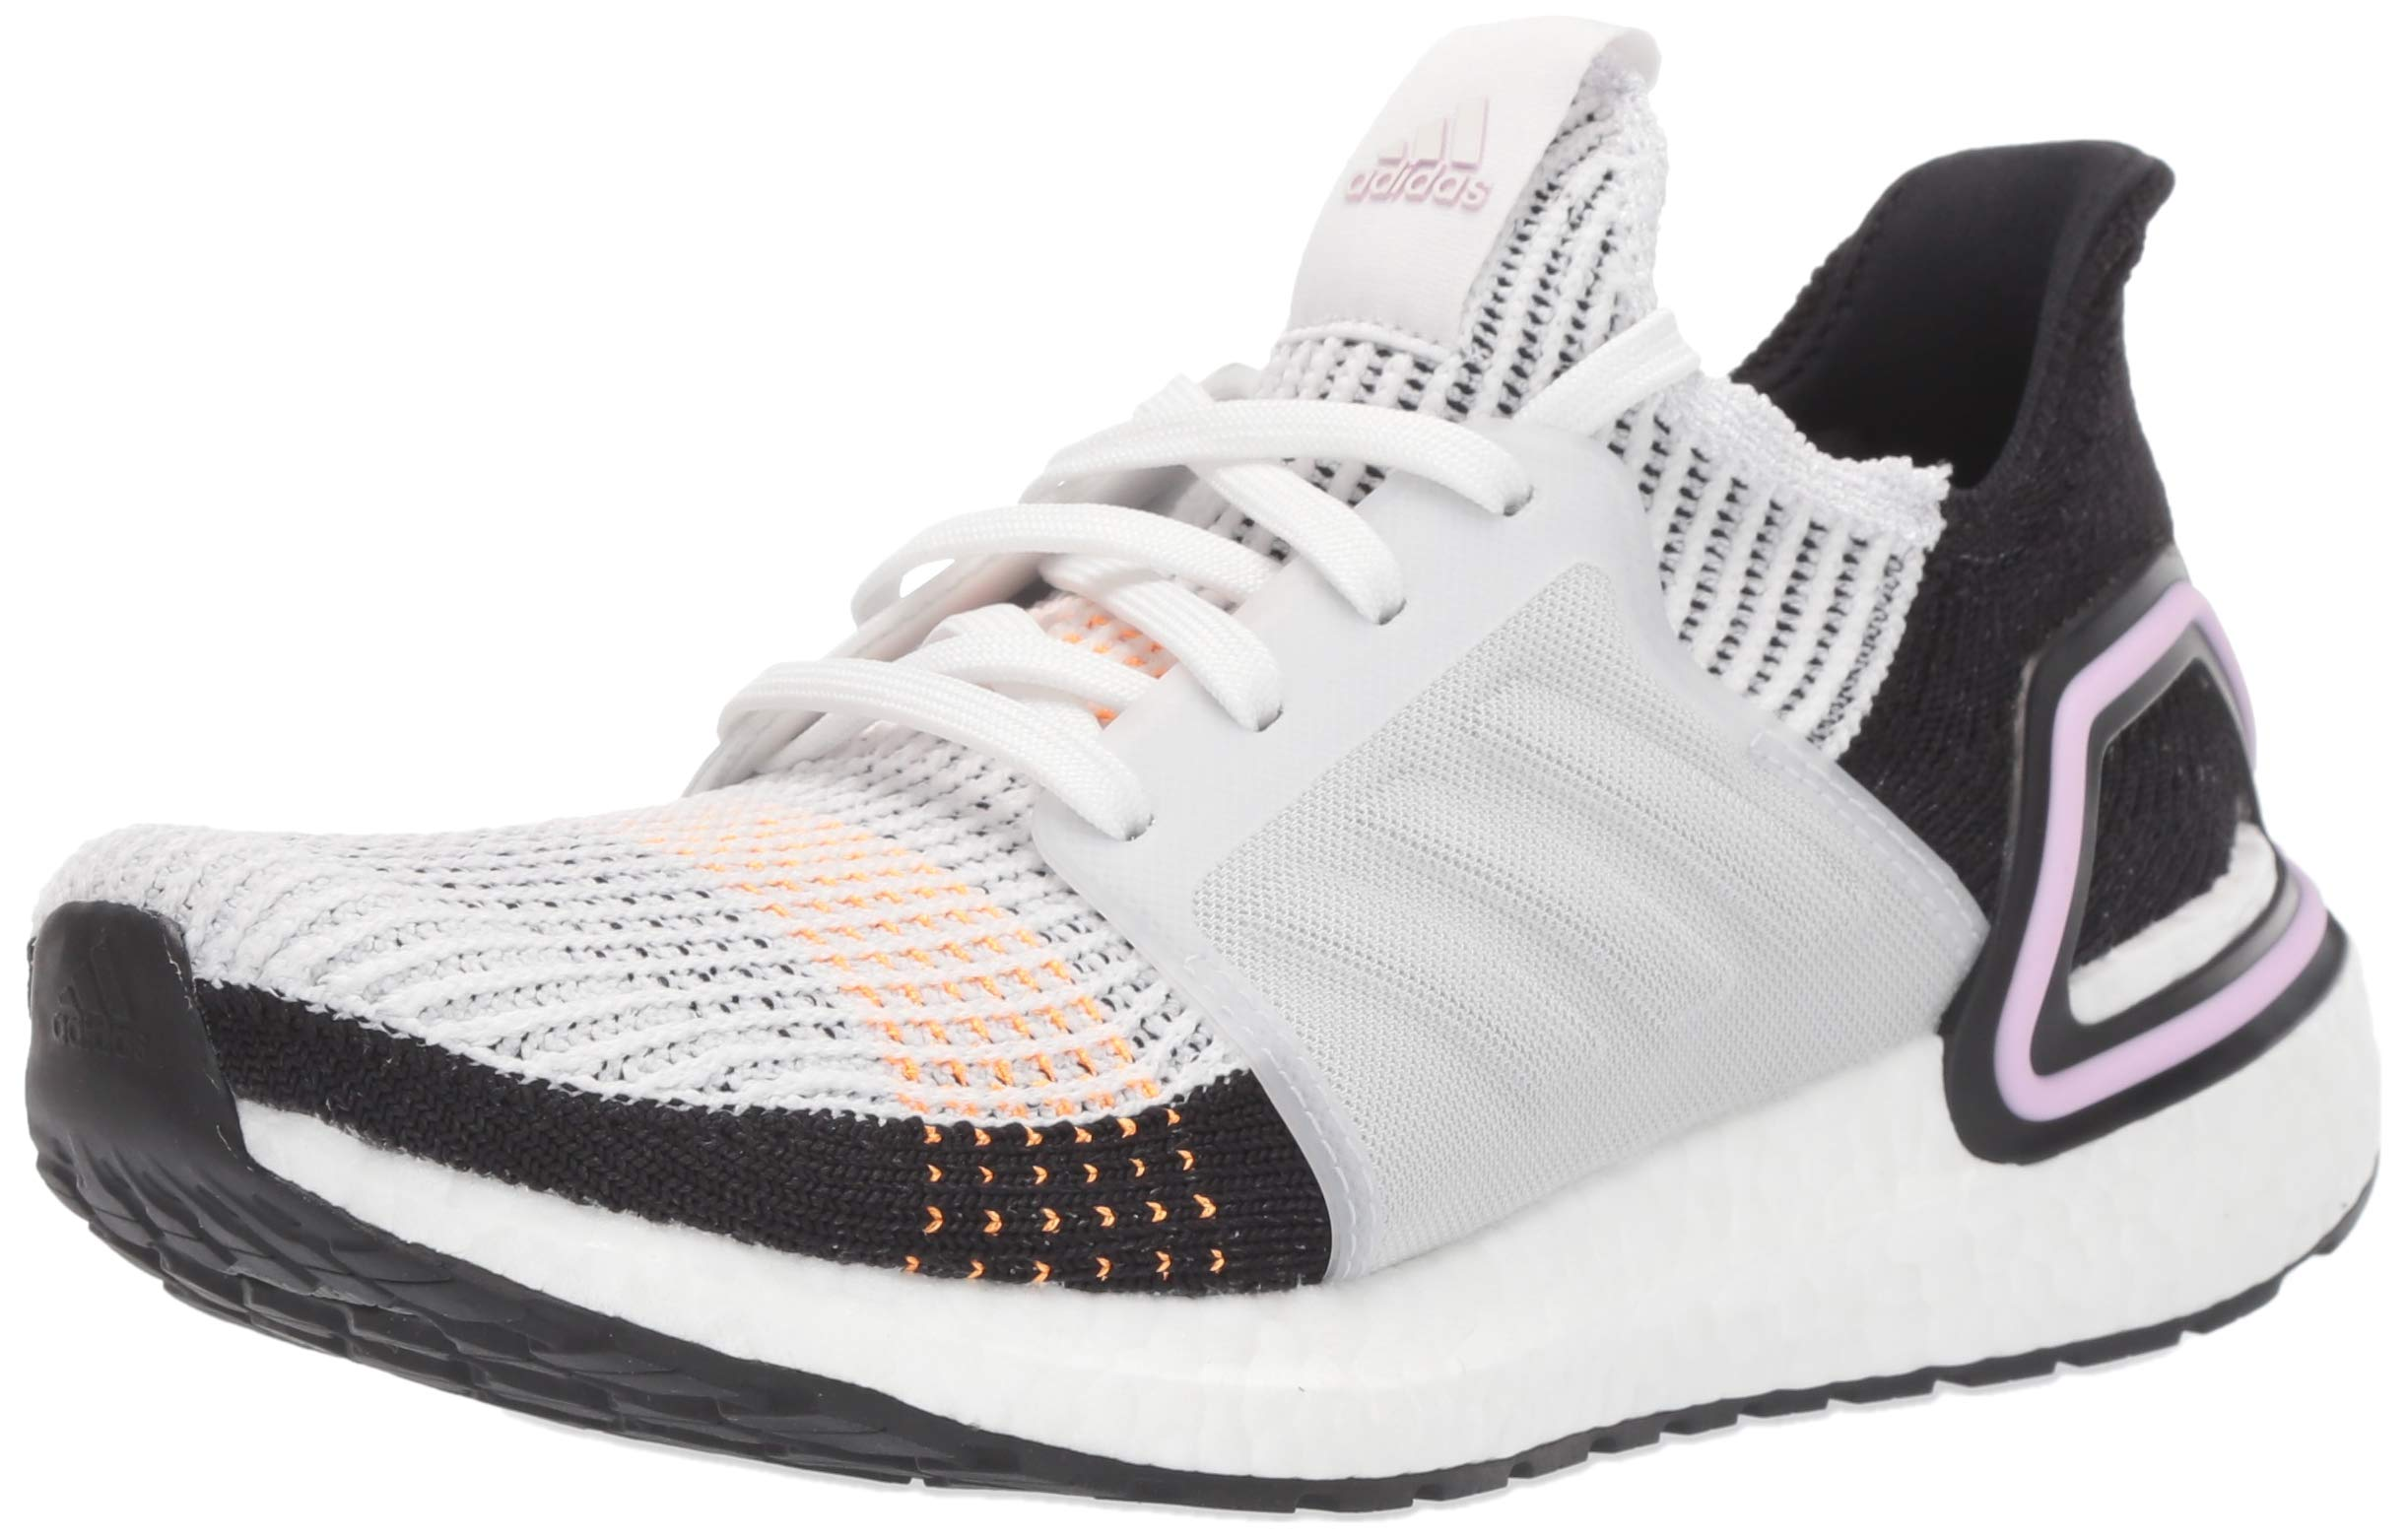 adidas Women's Ultraboost 19 Running Shoe, Crystal White/Crystal White/Black, 11.5 M US by adidas